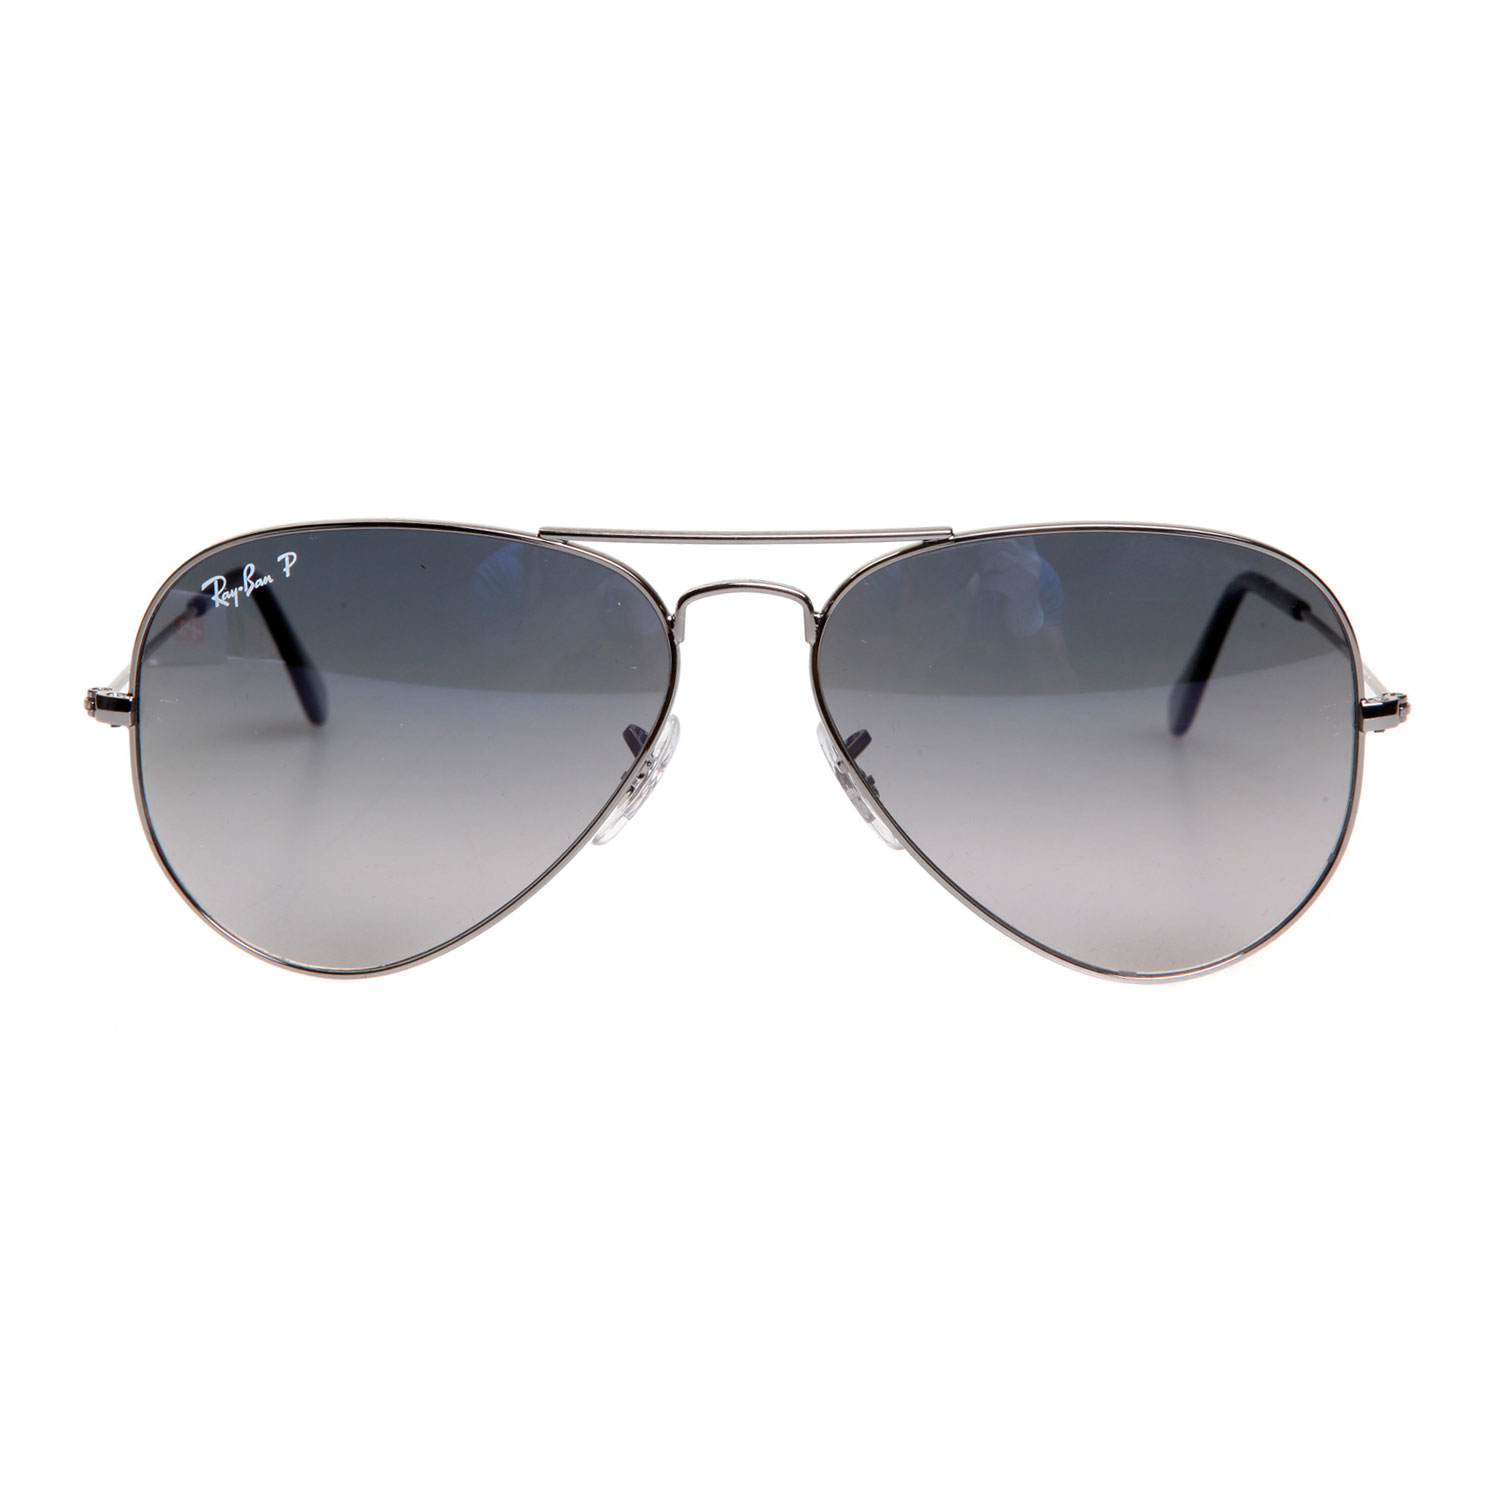 white and gold aviator ray bans ray ban sunglasses online shopping ... 65284beec662